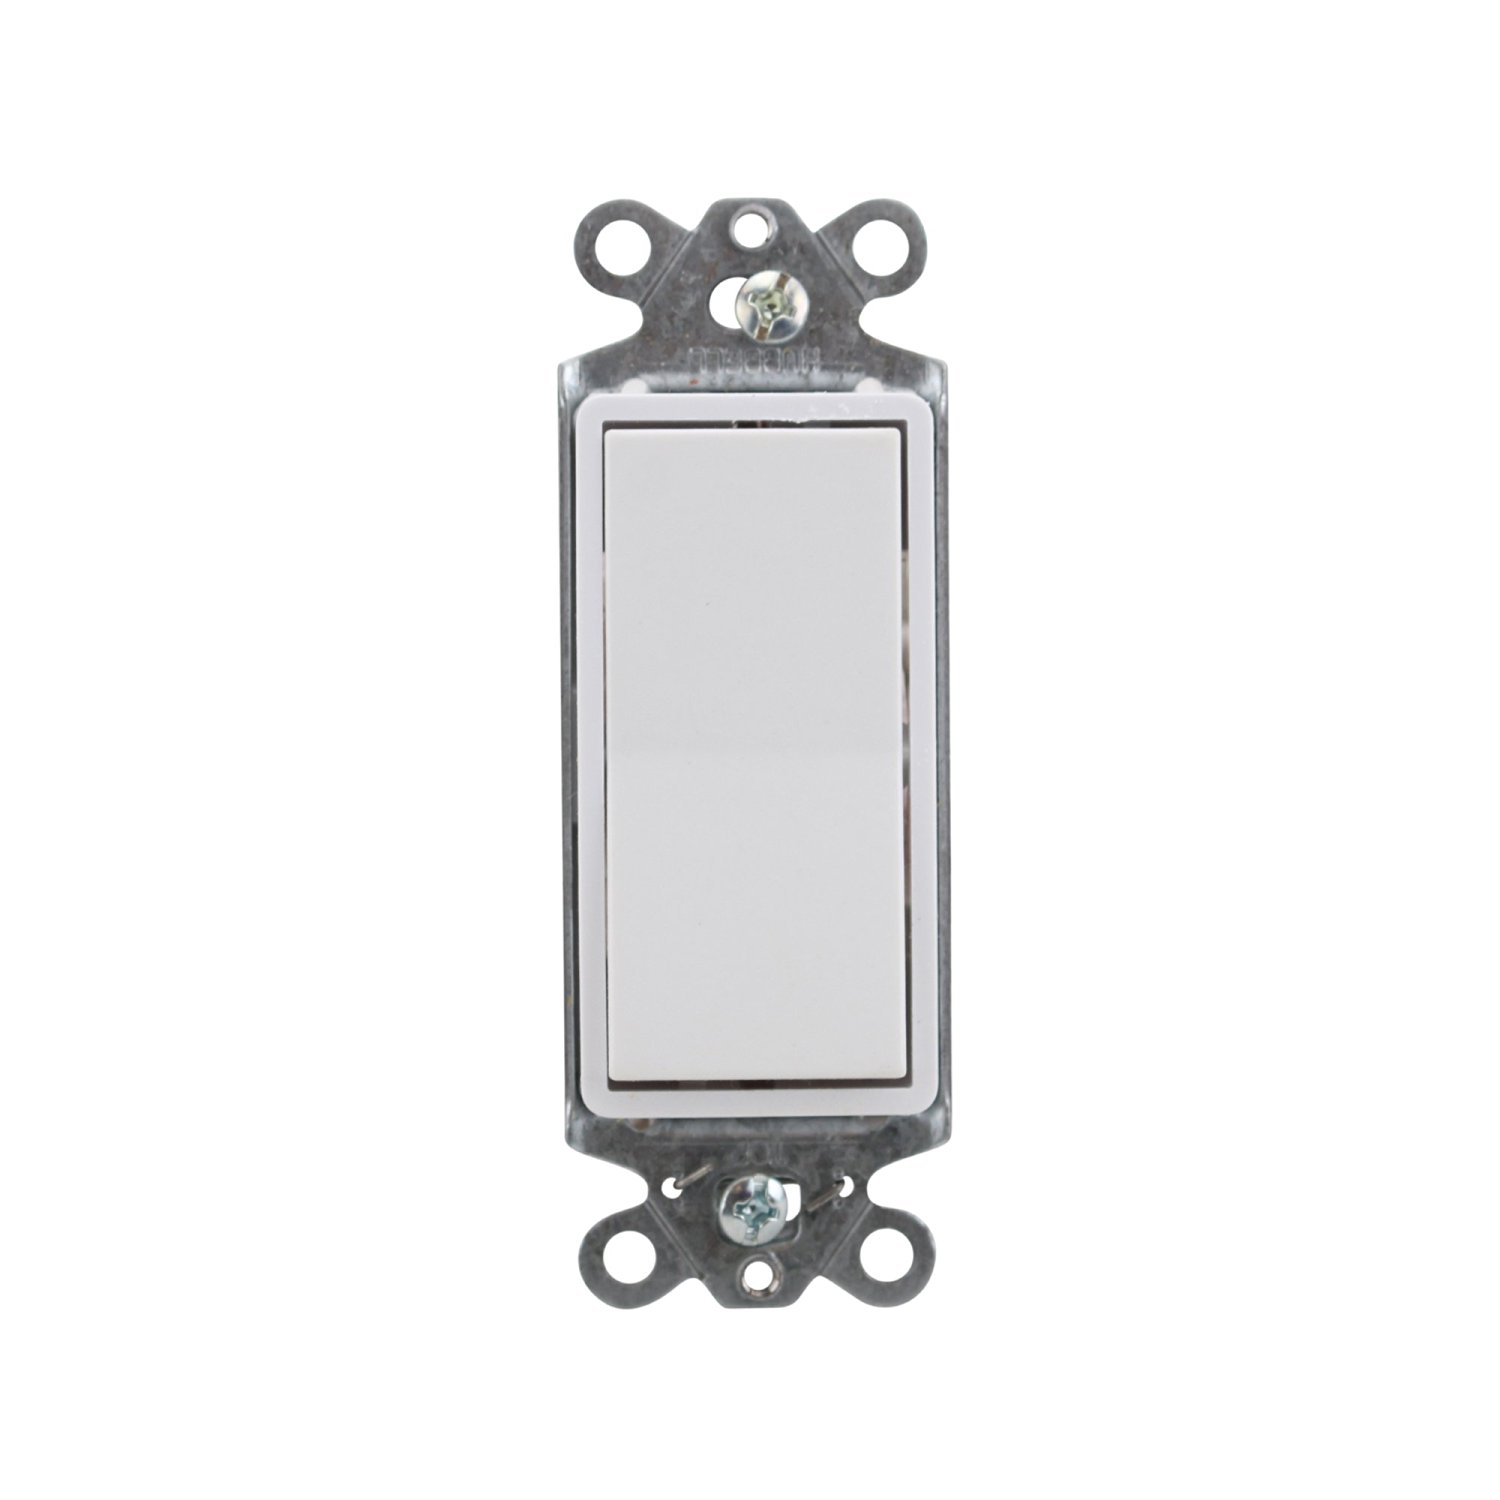 Cheap Hubbell Switch, find Hubbell Switch deals on line at Alibaba.com